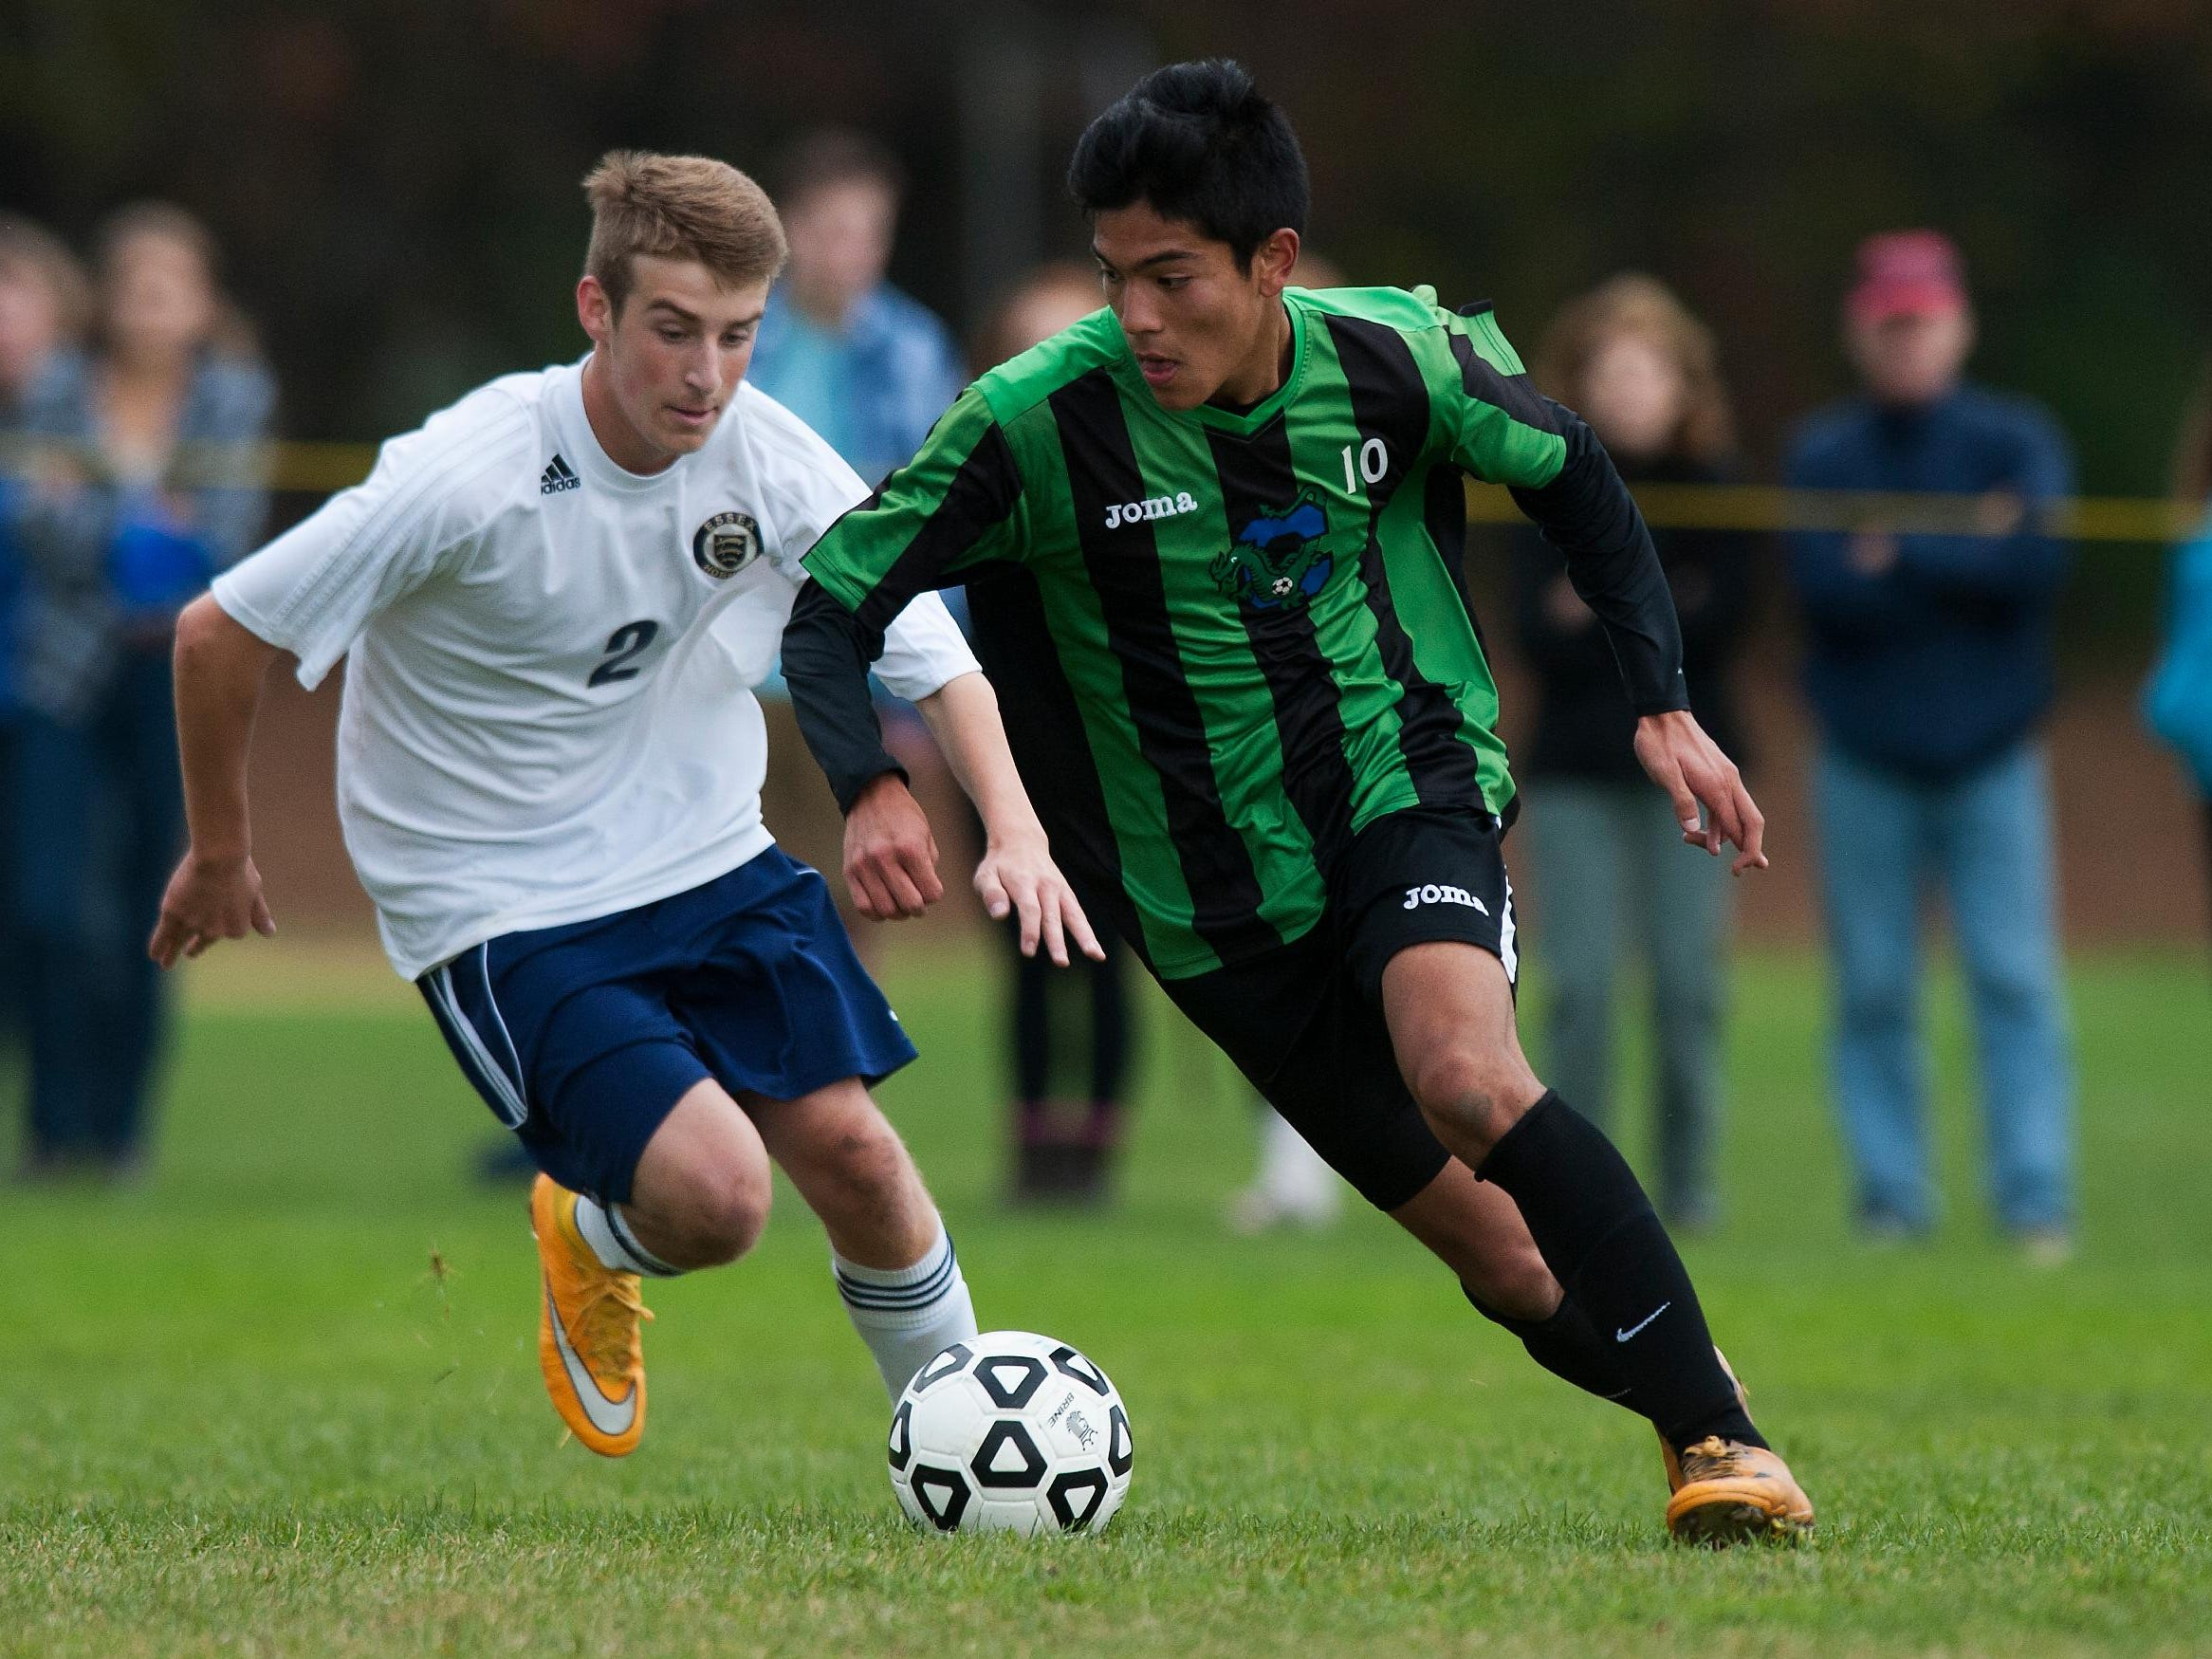 Colchester's Chris Zamarripa (10) runs past Essex's Aidan Whitney (2) with the ball during the boys playoff soccer game between the Colchester Lakers and the Essex Hornets at Essex High School on Saturday afternoon October 25, 2014 in Essex, Vermont (BRIAN JENKINS, for the Free Press)